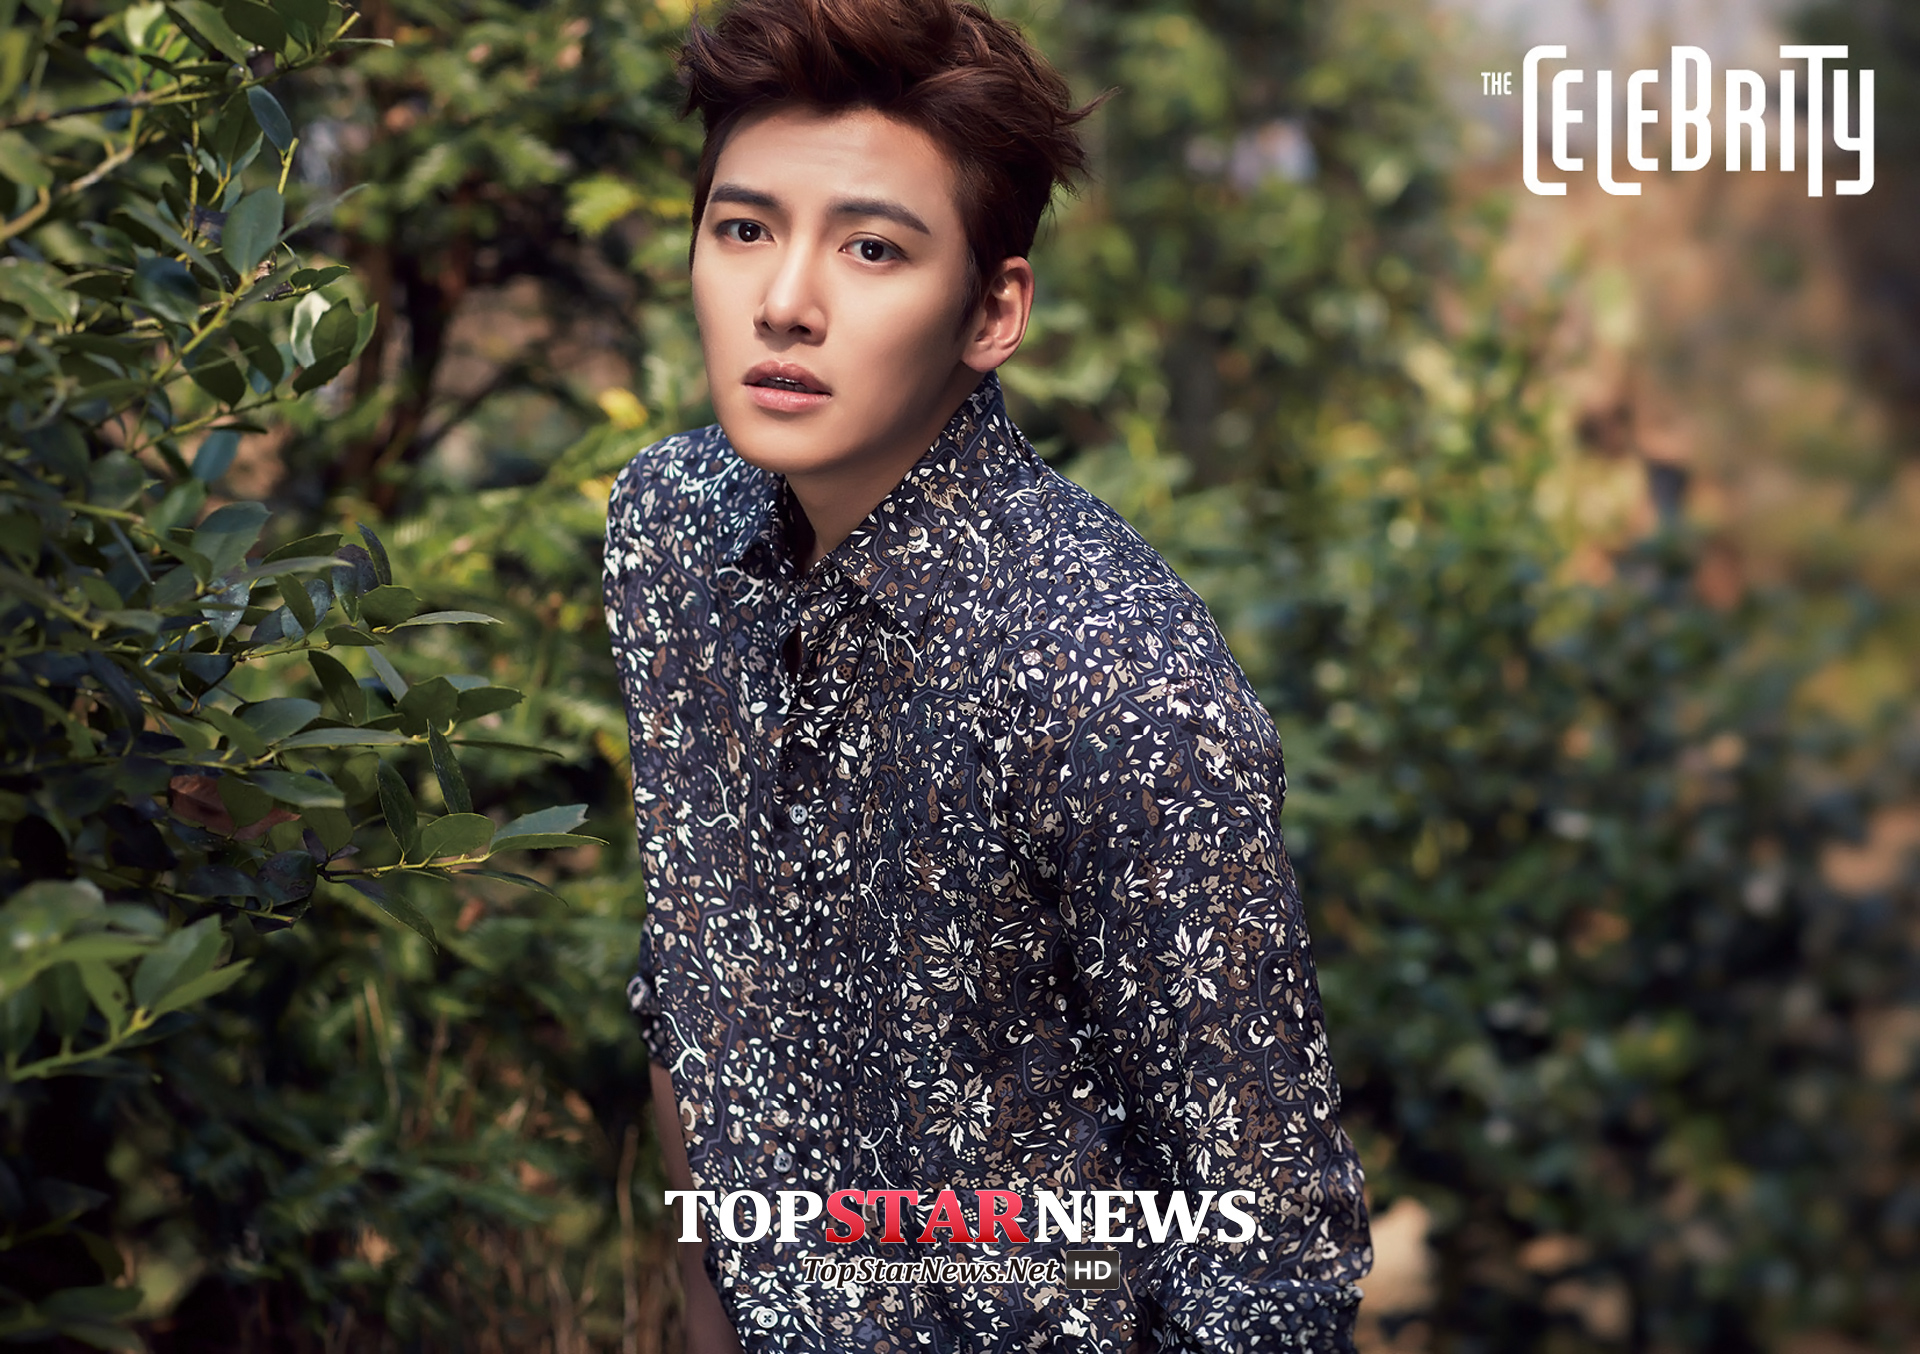 Ji Chang Wook Hd Wallpaper Magazine Ji Chang Wook Fronts The Cover Of The